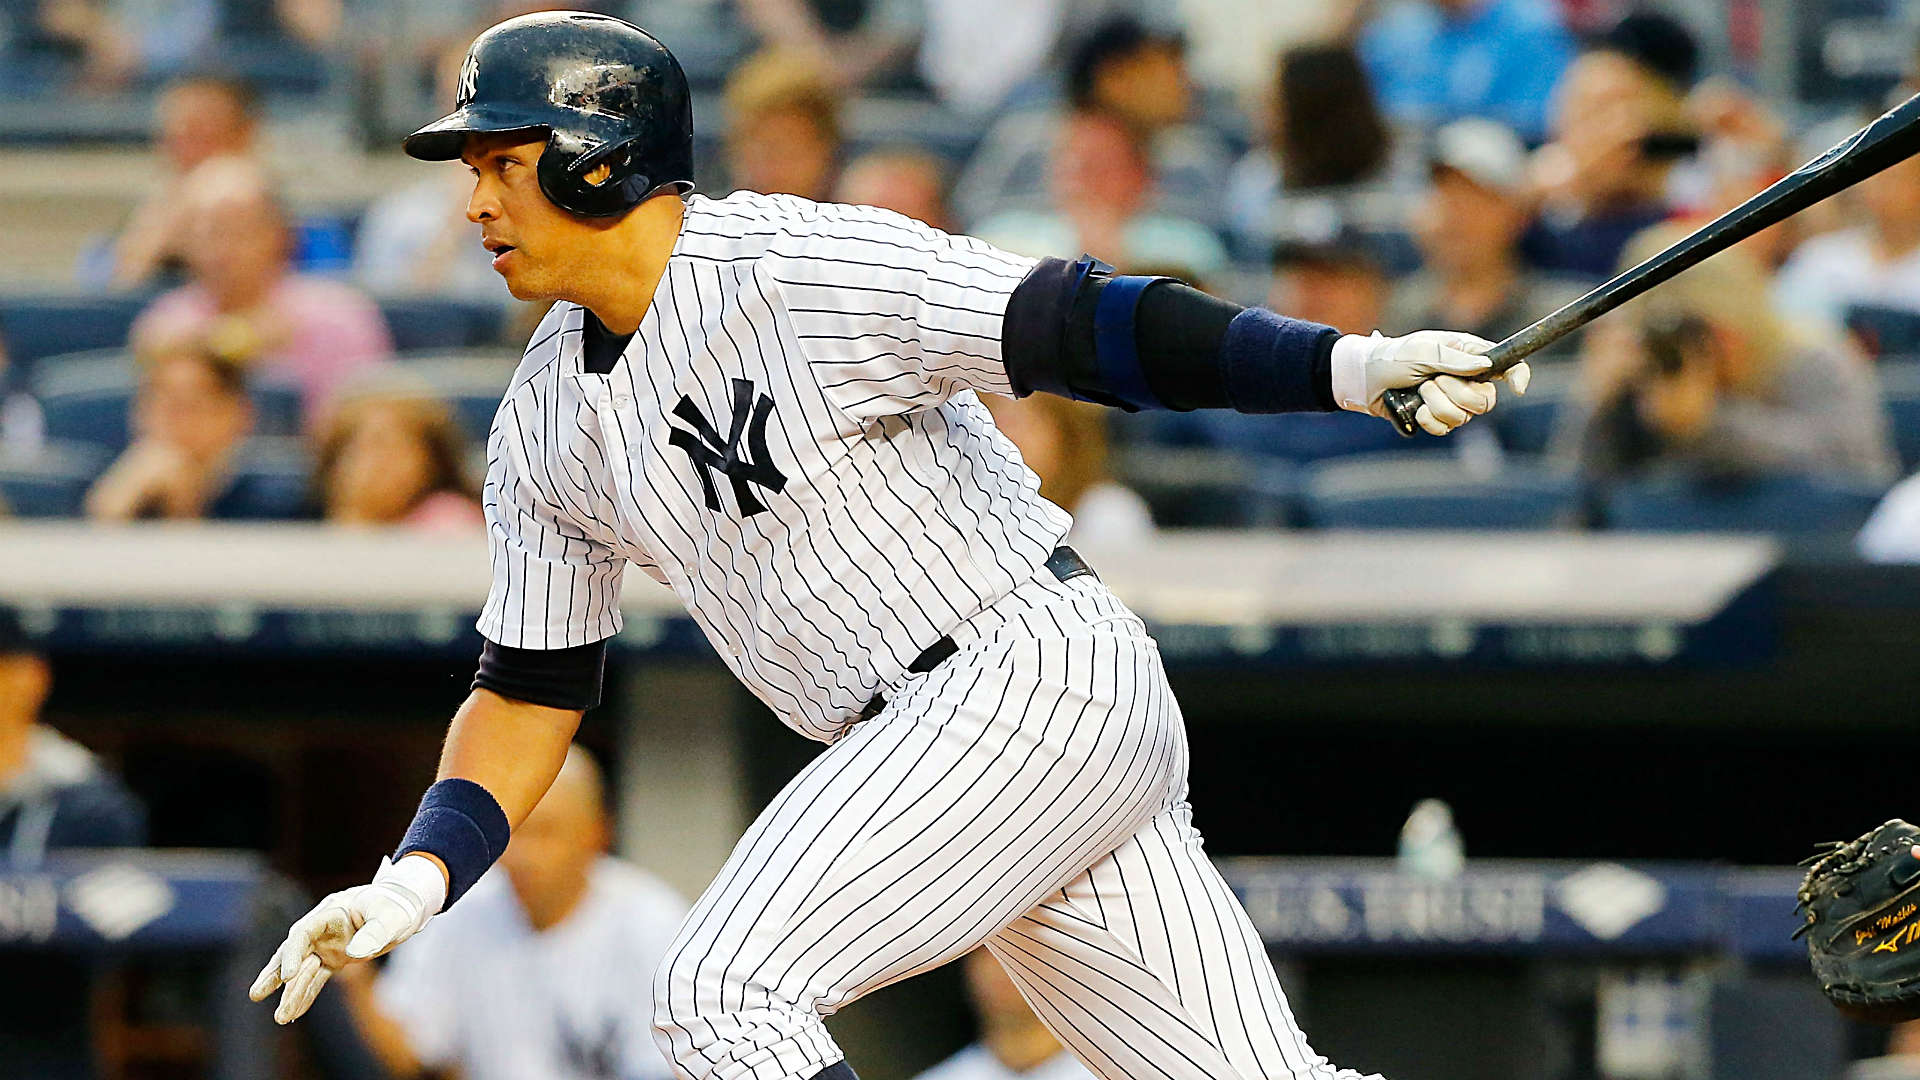 A-Rod, Yankees resolve bonus dispute with $3.5 million charitable donation